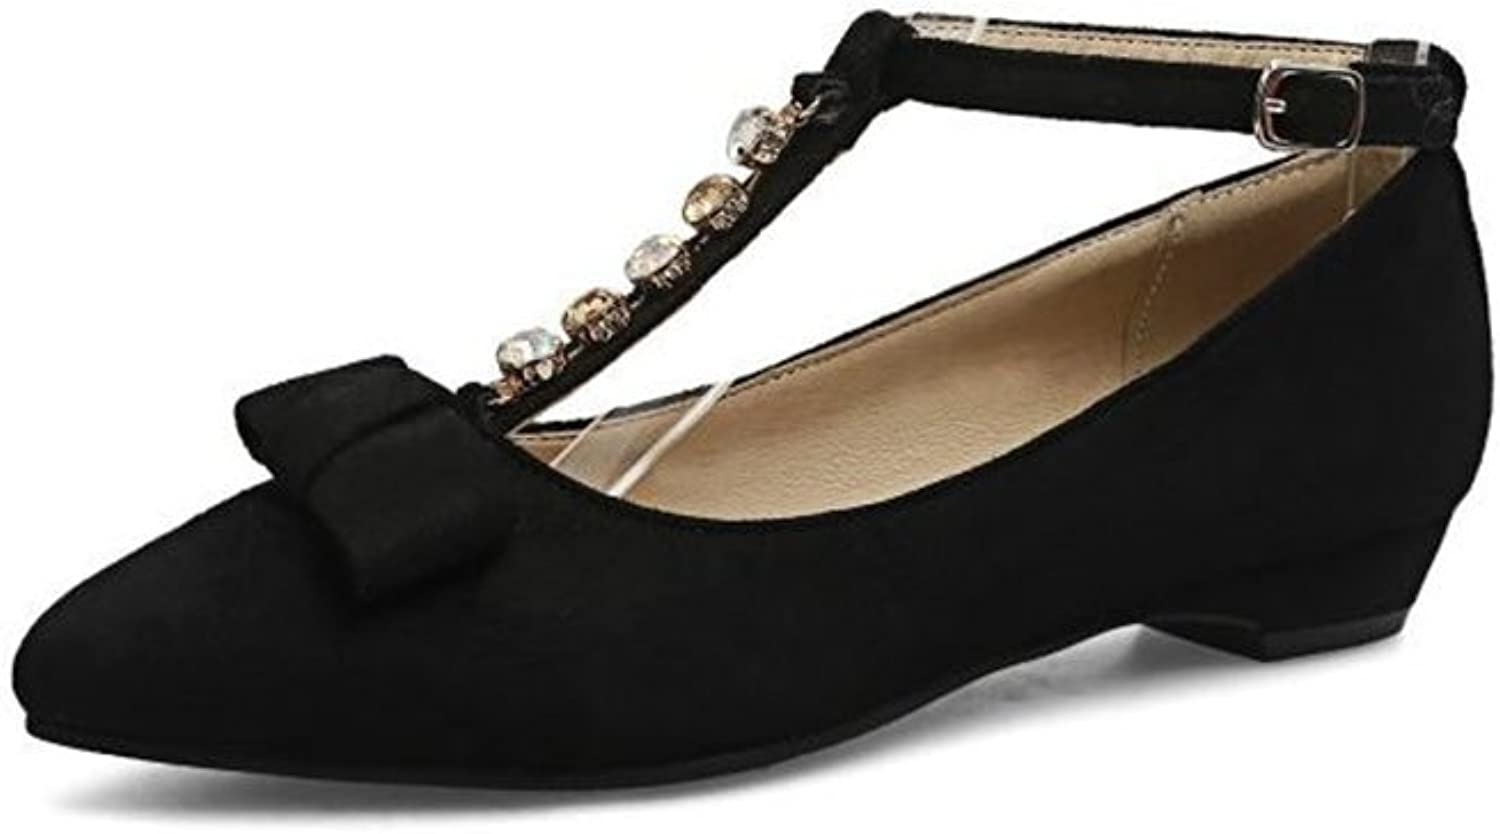 Eleganceoo Women's Fashion Trendy Pointy Toe Low Cut Bow shoes